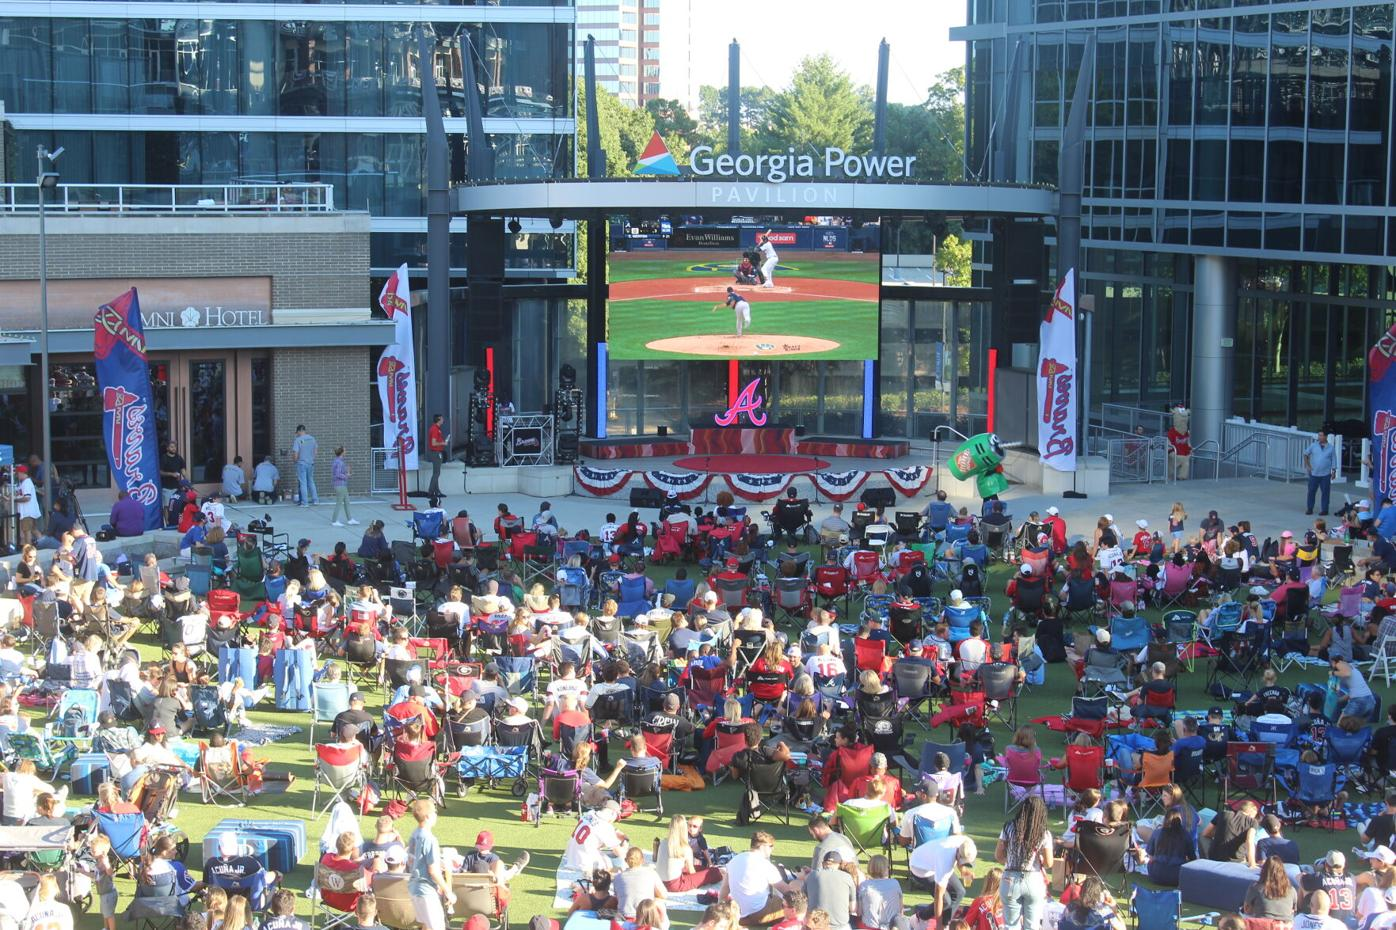 Braves watch party 10/8/21 (aerial)